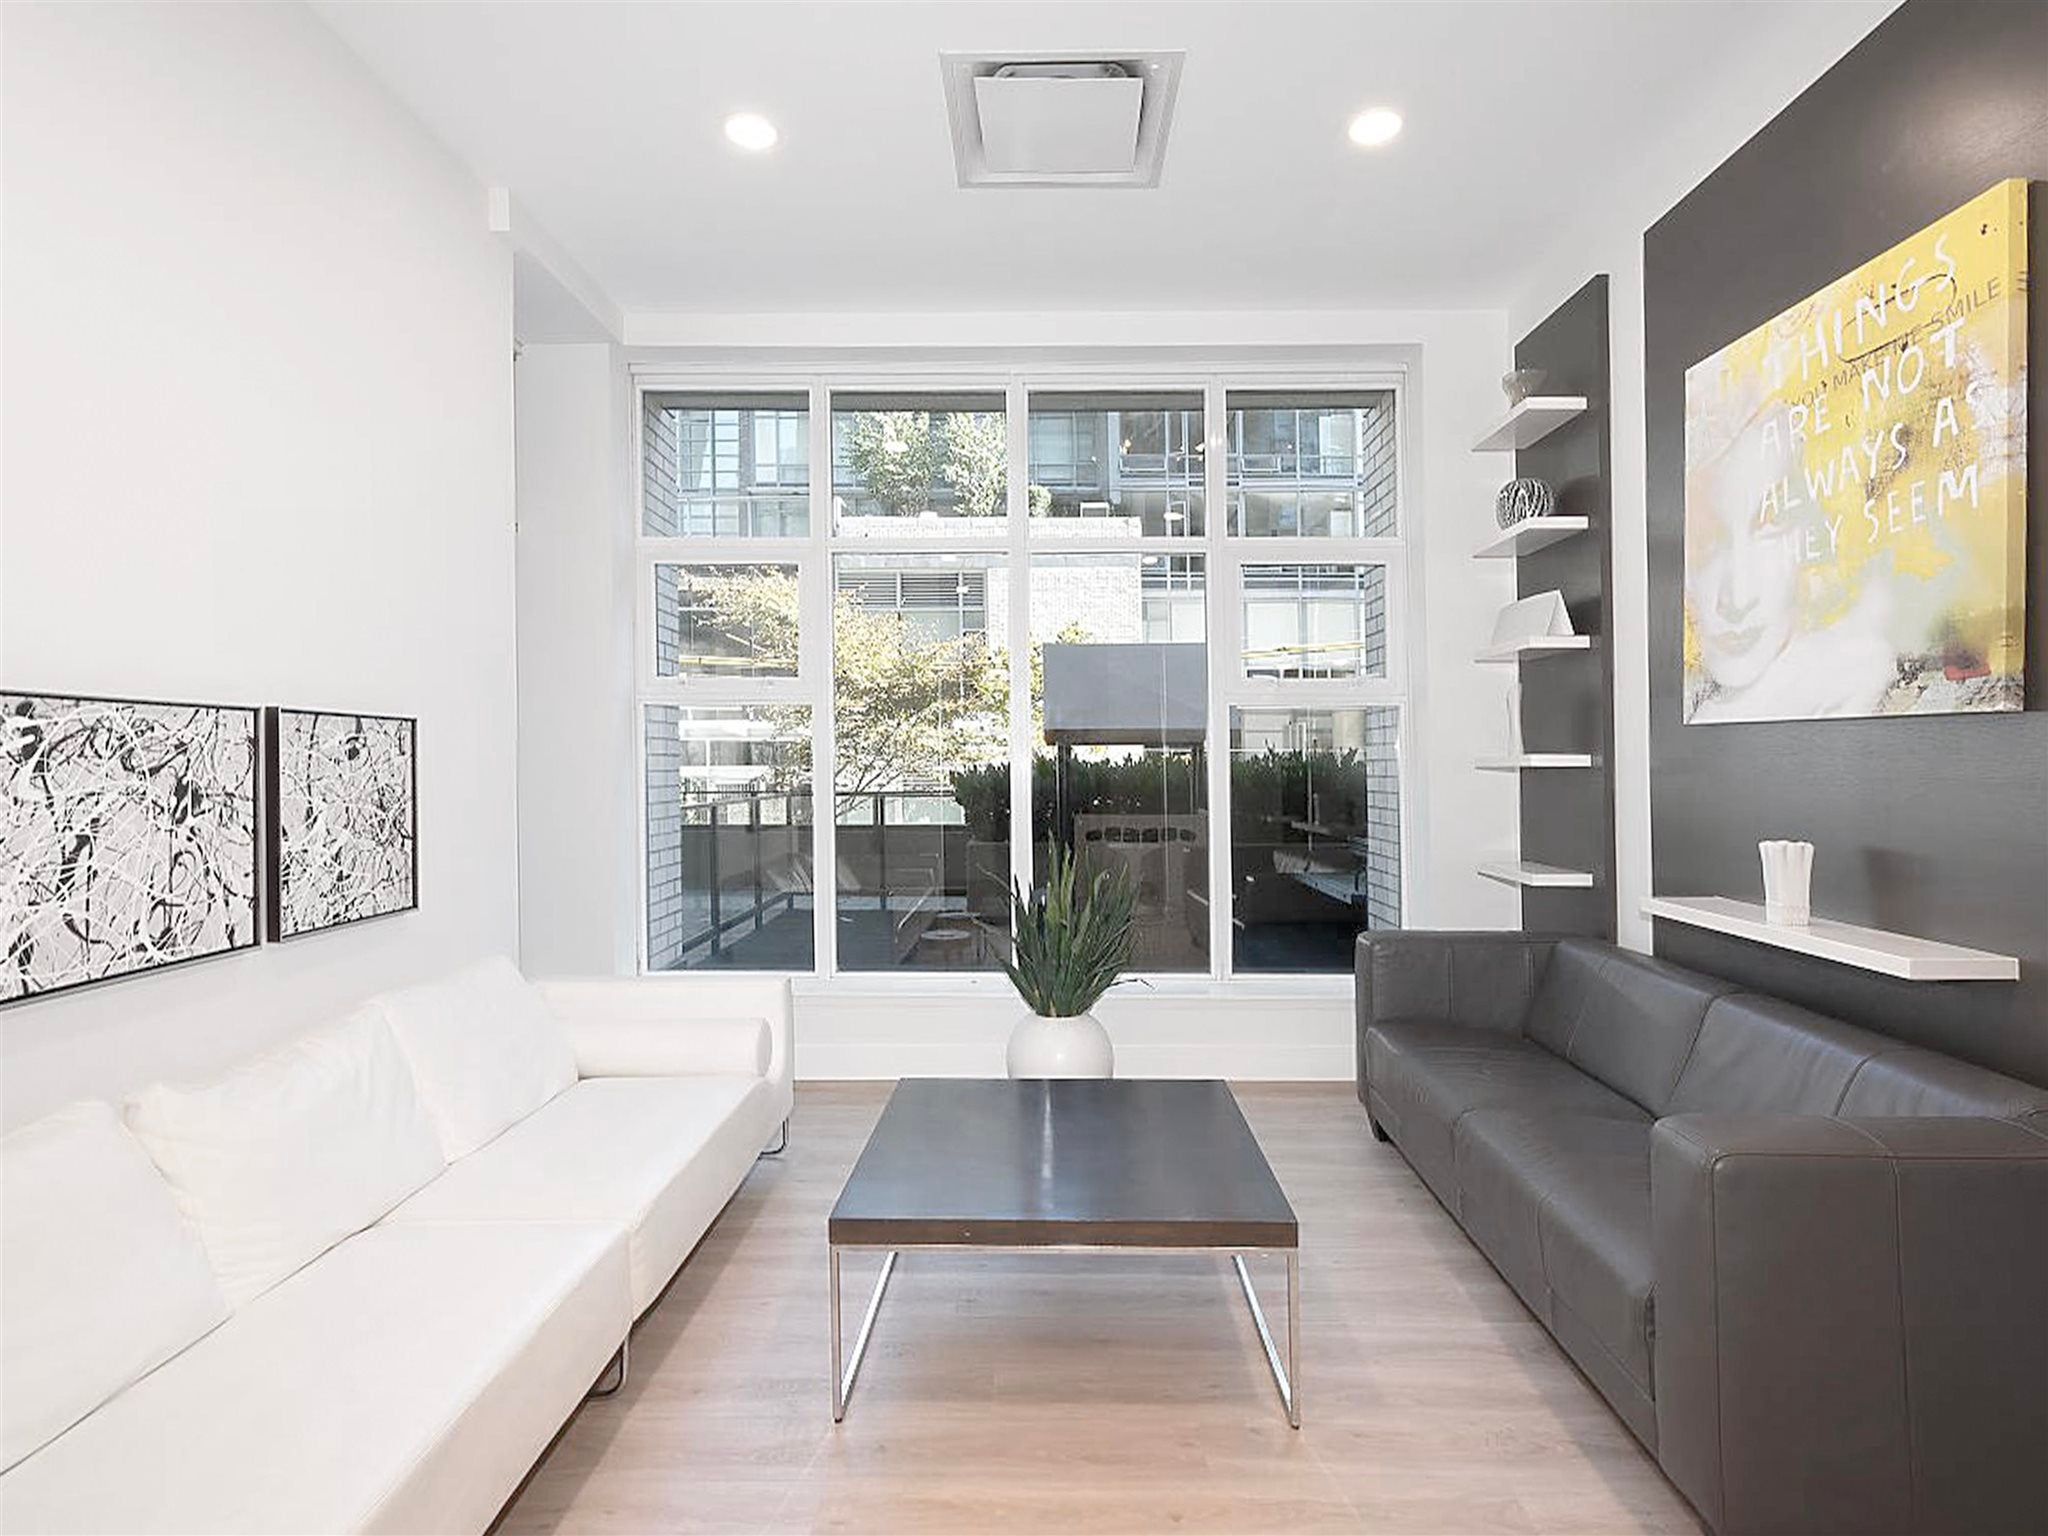 101 1252 HORNBY STREET - Downtown VW Apartment/Condo for sale, 1 Bedroom (R2604180) - #23